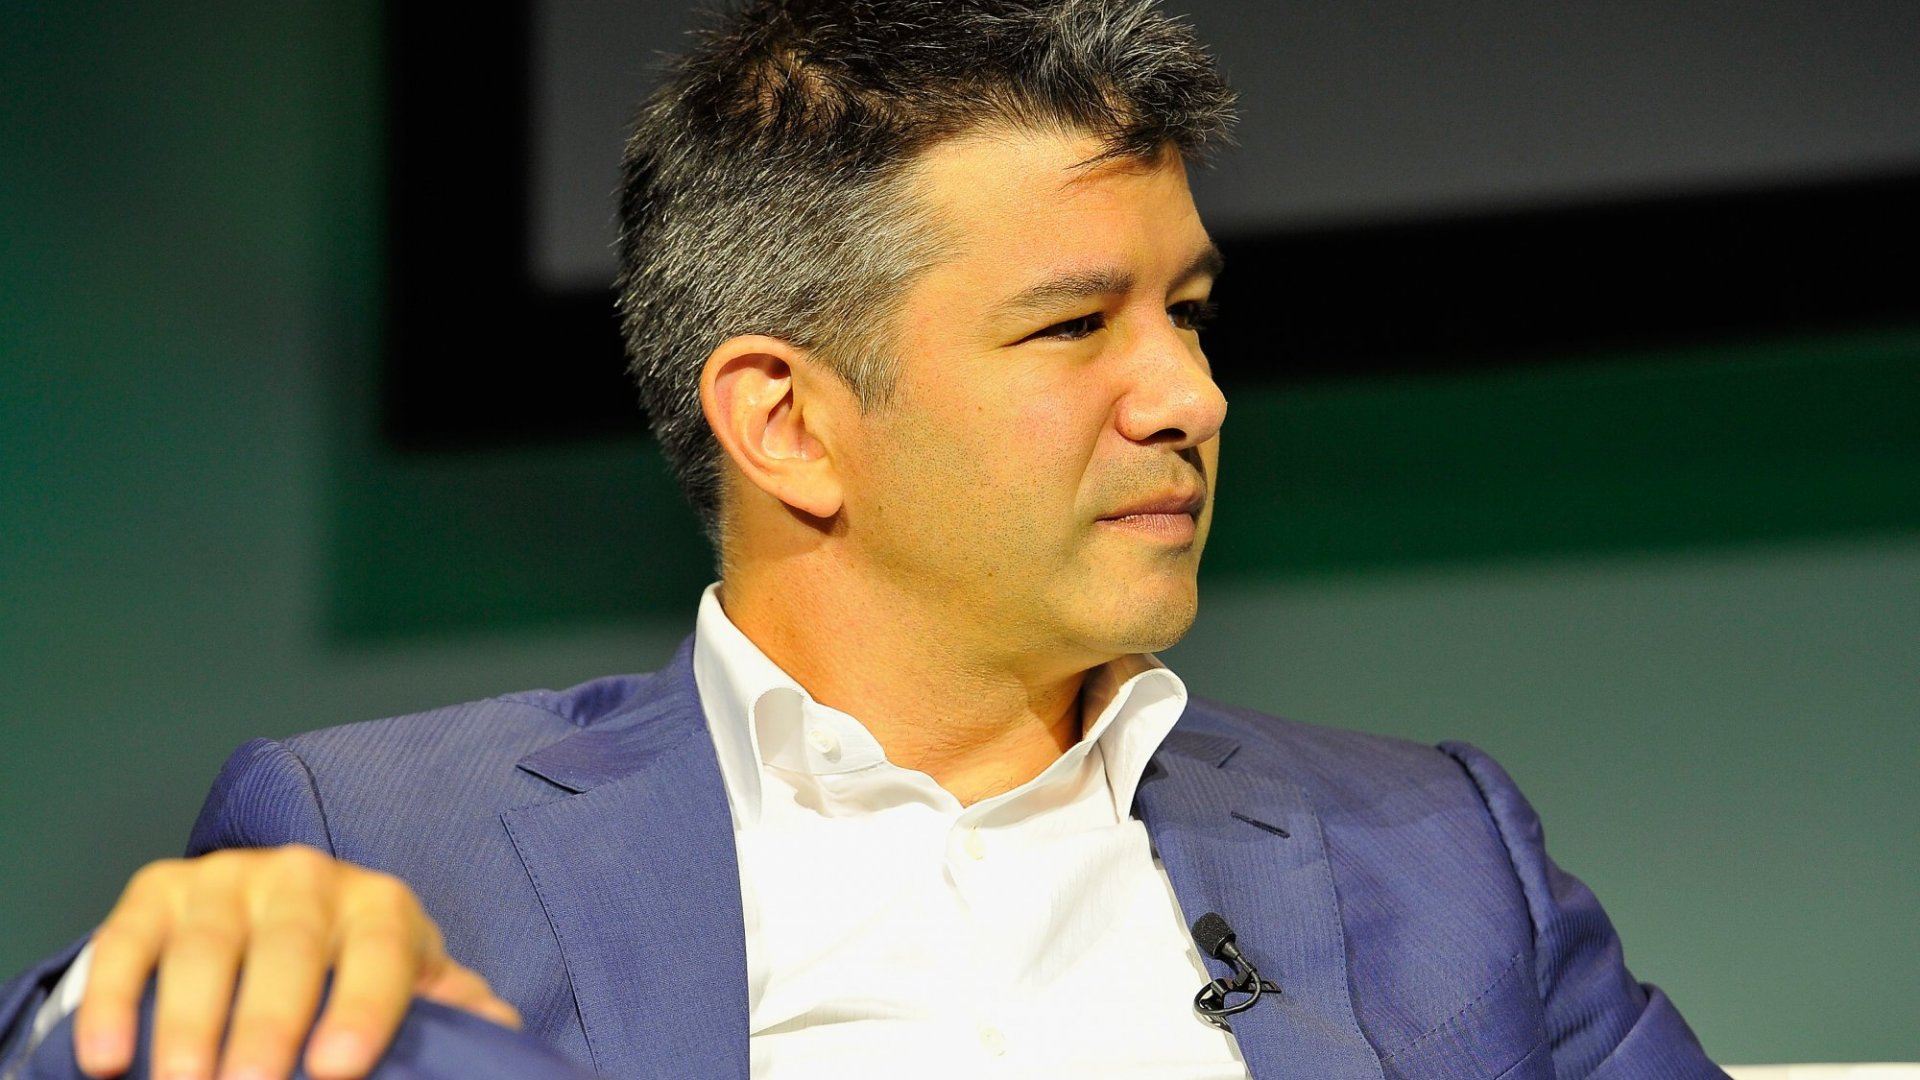 How Uber Became the Most Valuable Startup in the World